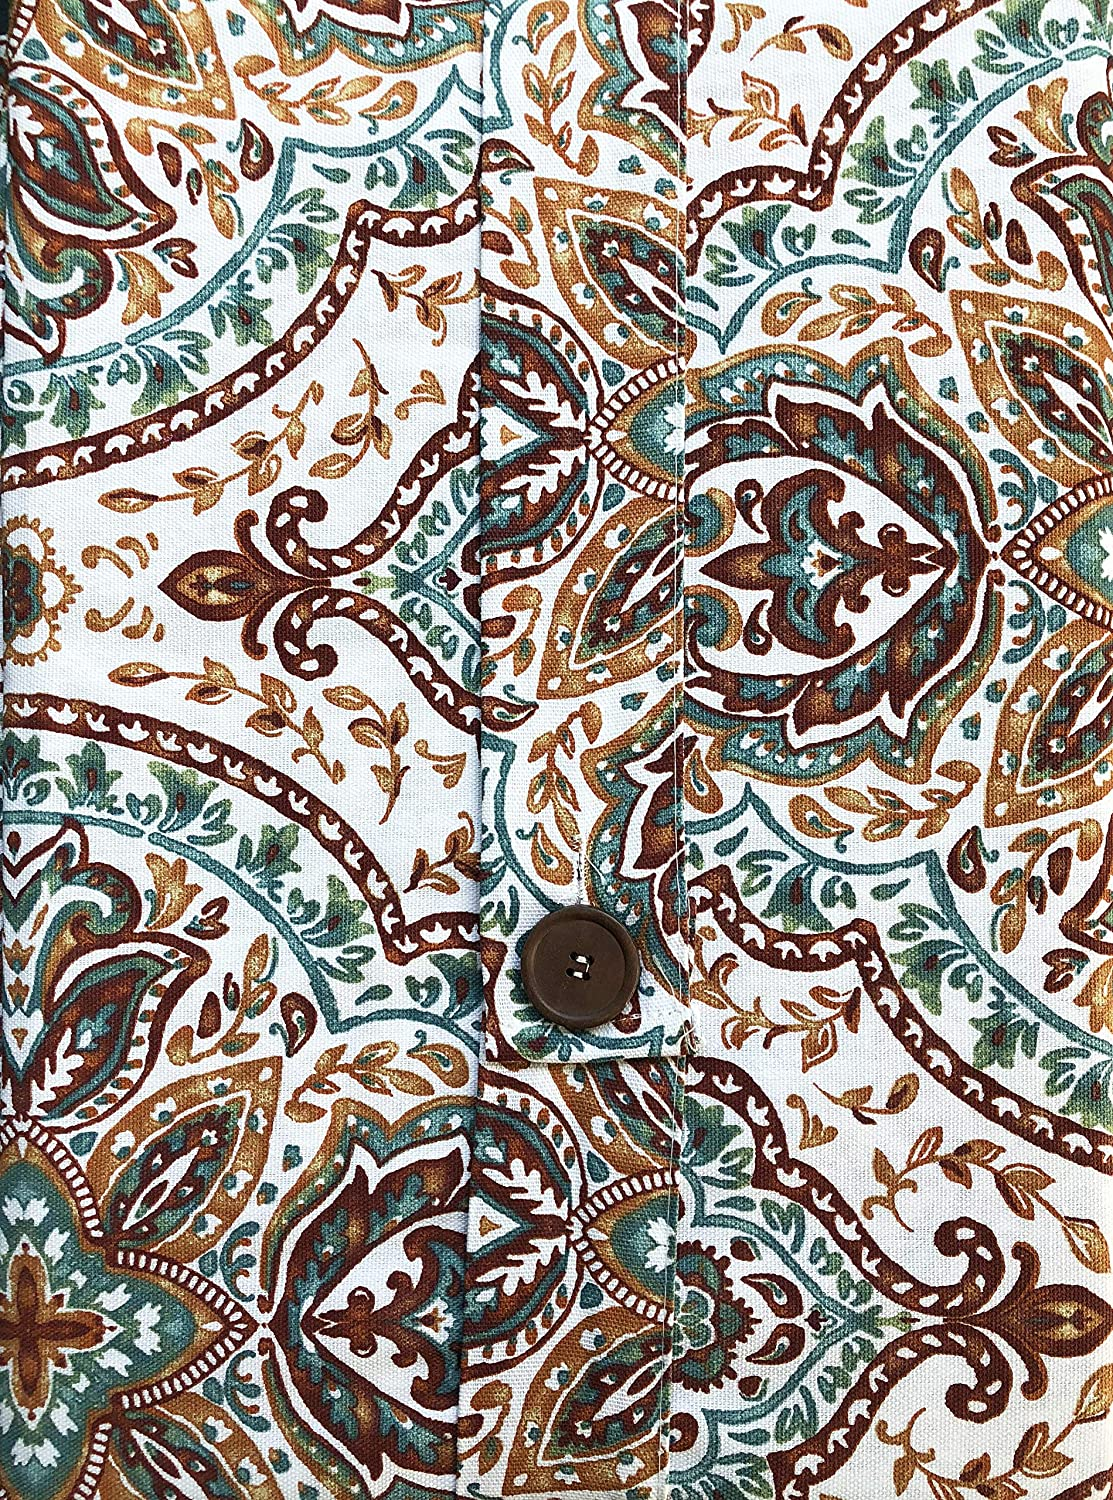 60 Inches by 102 Inches Envogue Fabric Tablecloth Exotic Boho Medallion Pattern in Shades of Rust Blue Orange Taupe on White